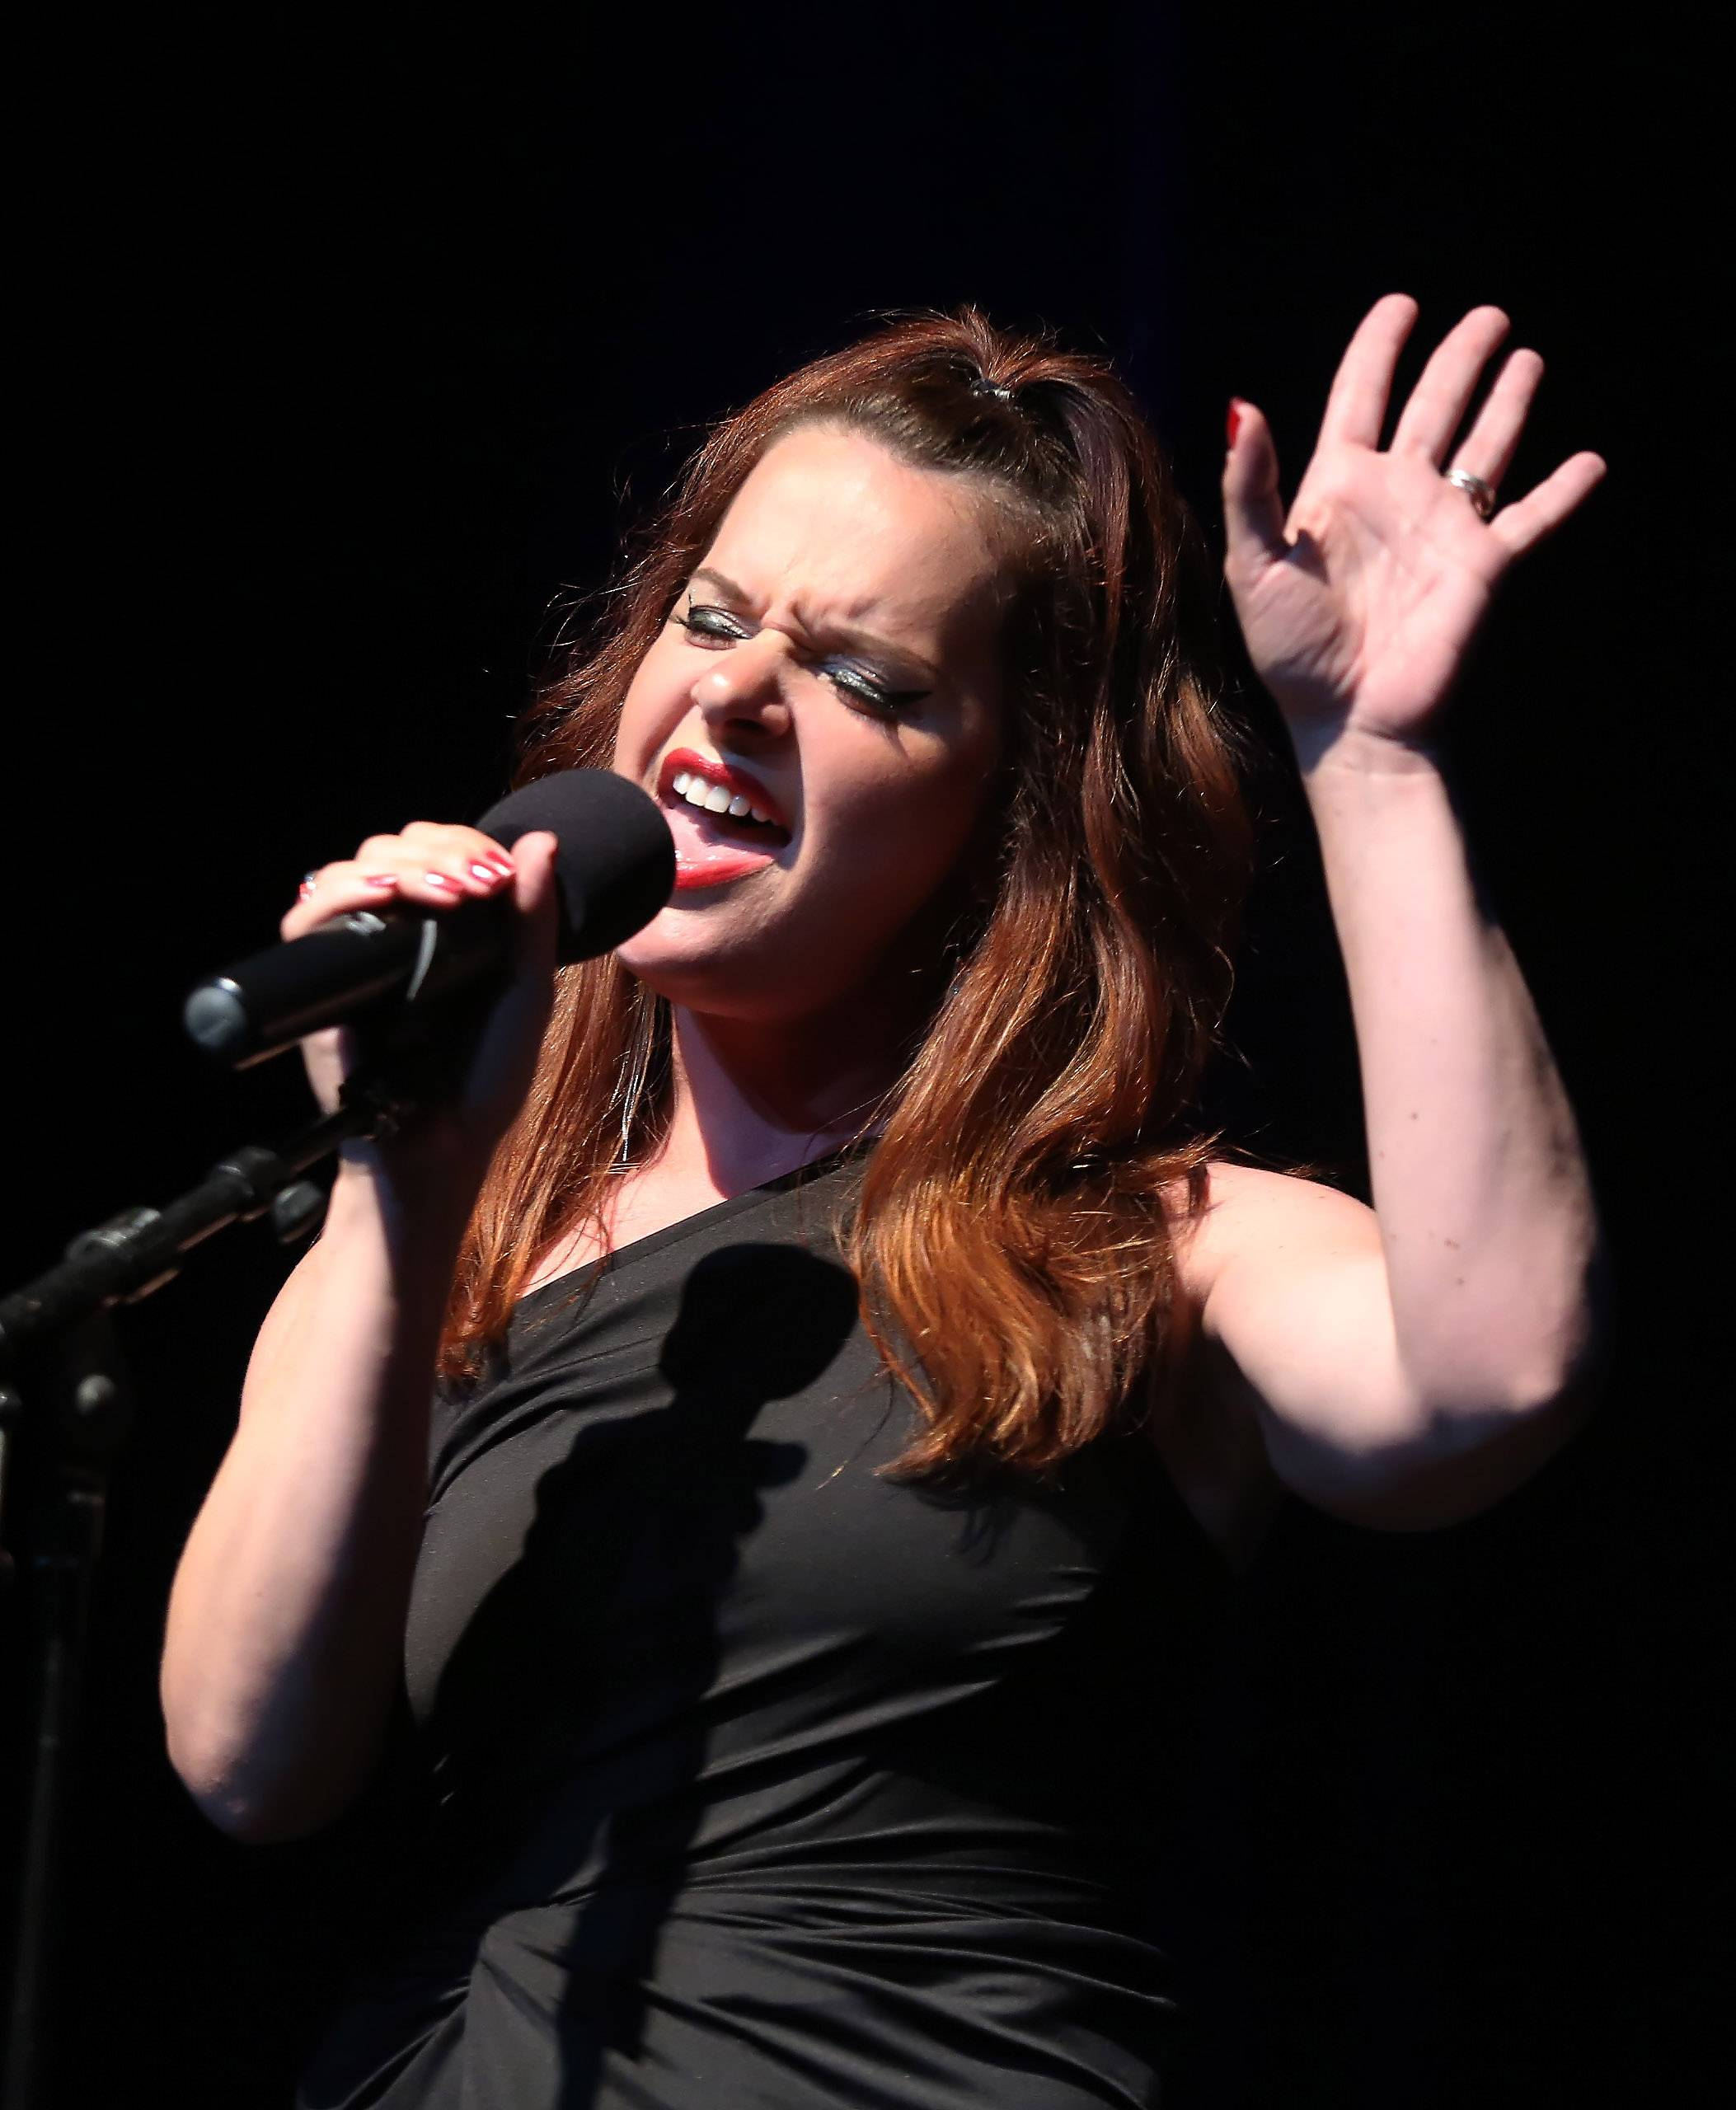 Country singer Rachel (McPheeters) of DeKalb is a Top 15 finalist of Suburban Chicago's Got Talent. She's set to perform at 7 p.m. tonight at the Prairie Center for the Arts in Schaumburg.